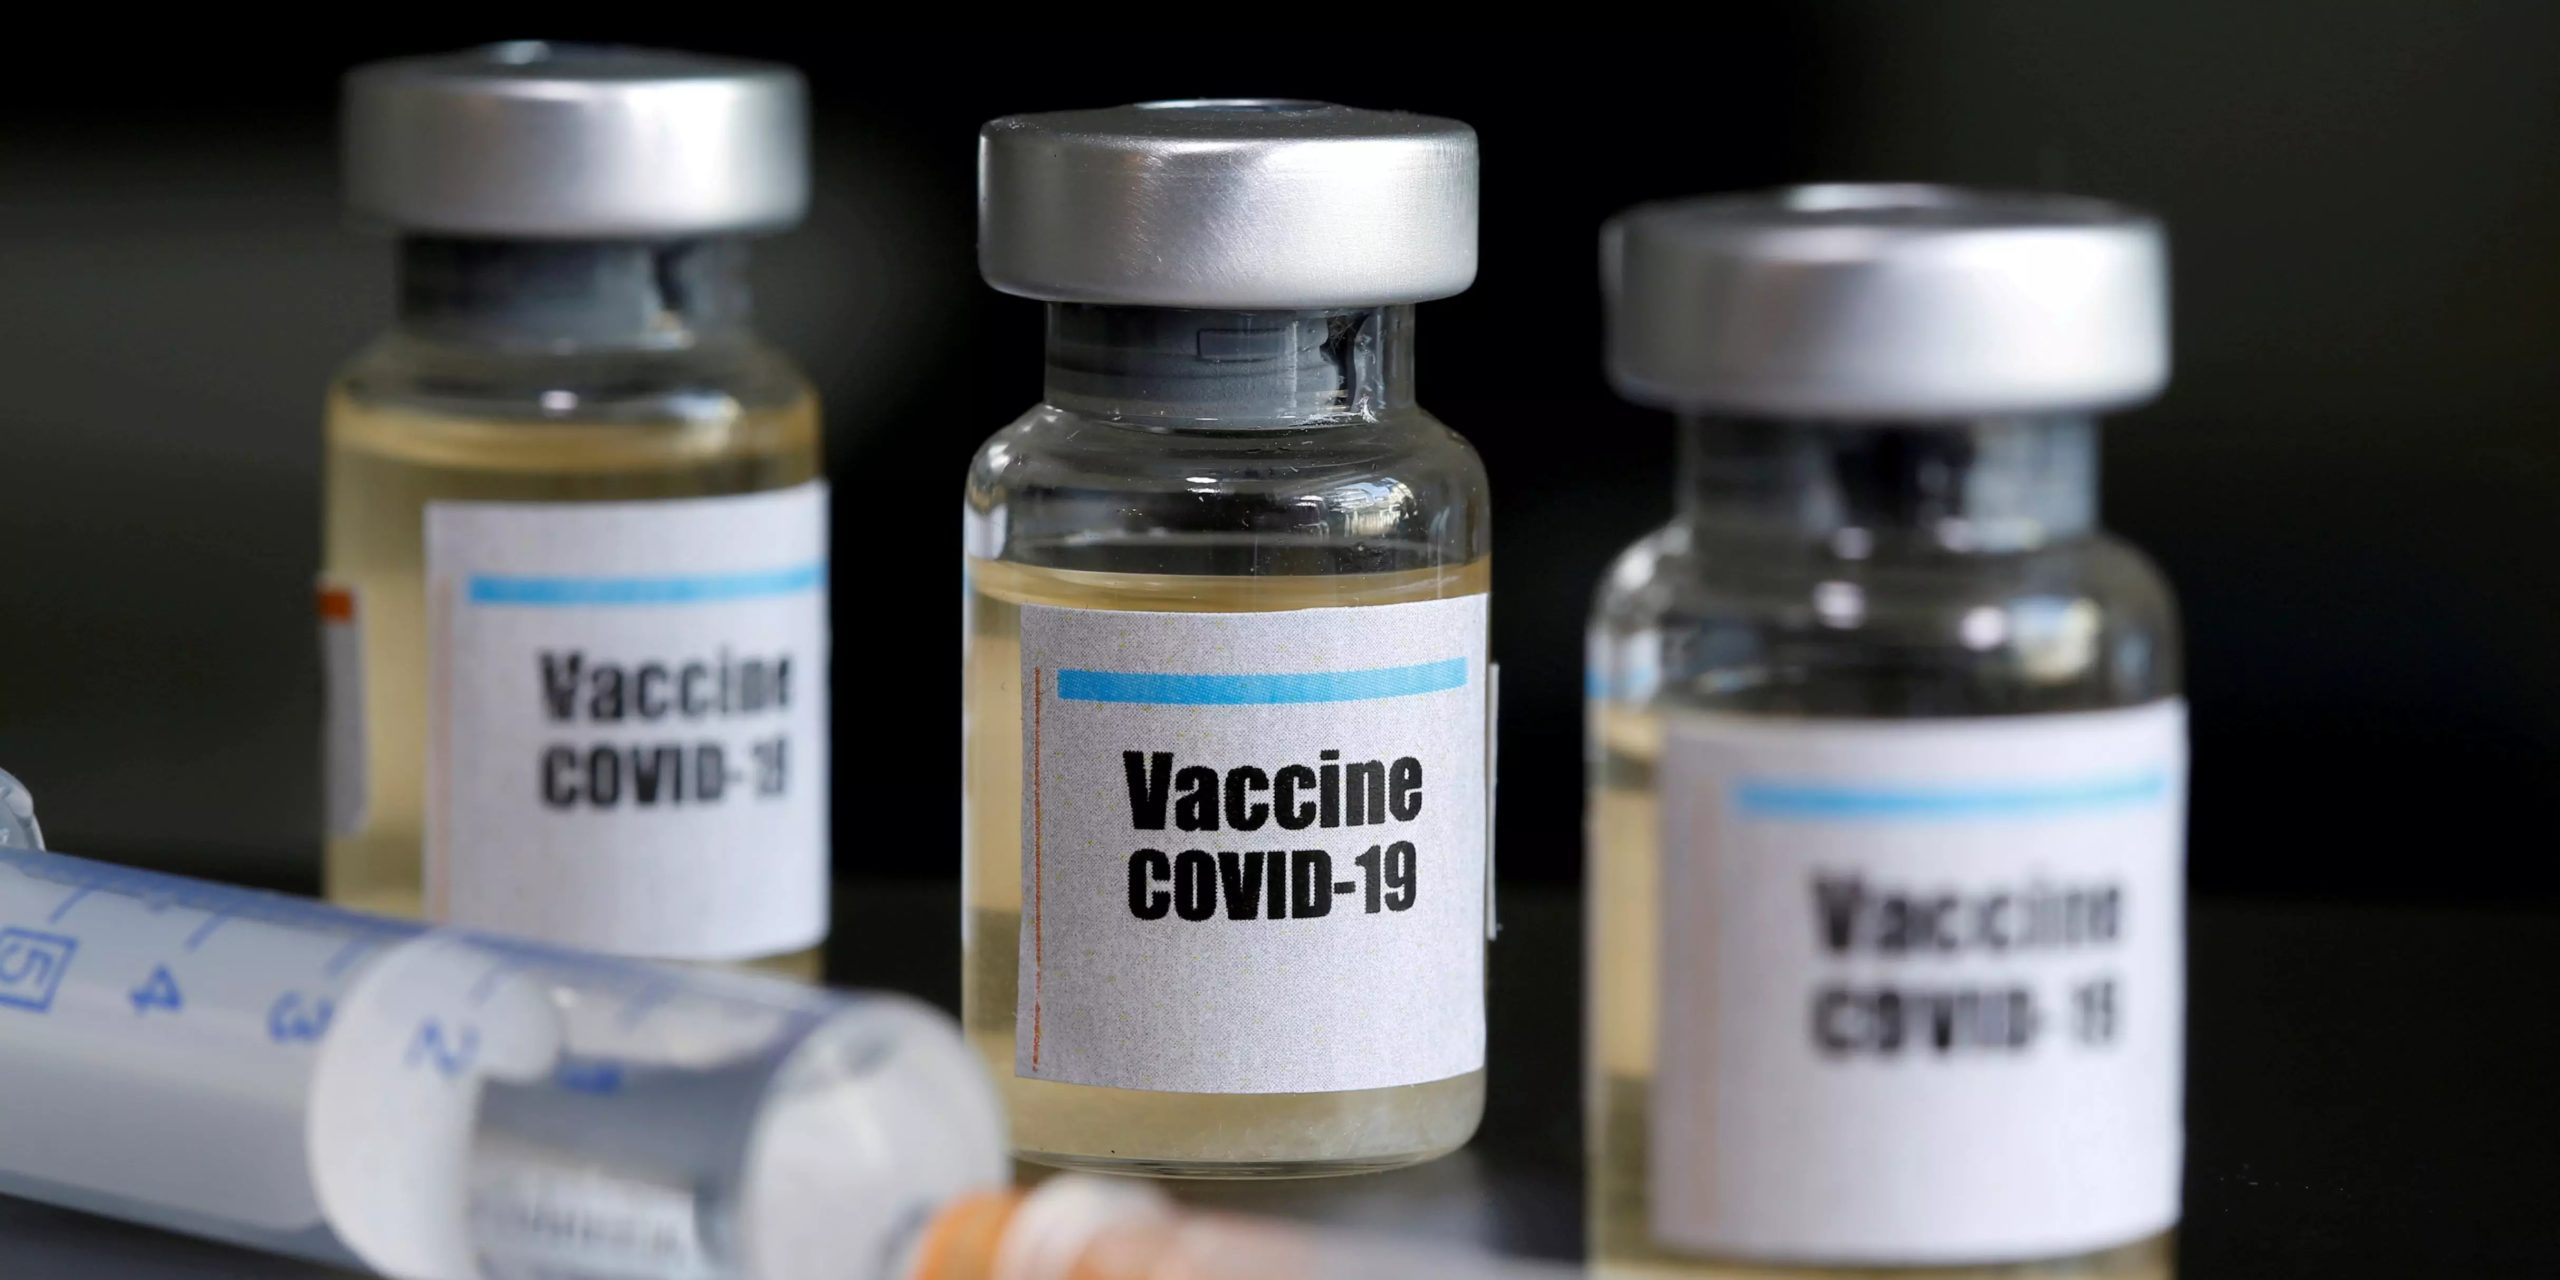 Vaccines won't work against the New COVID-19